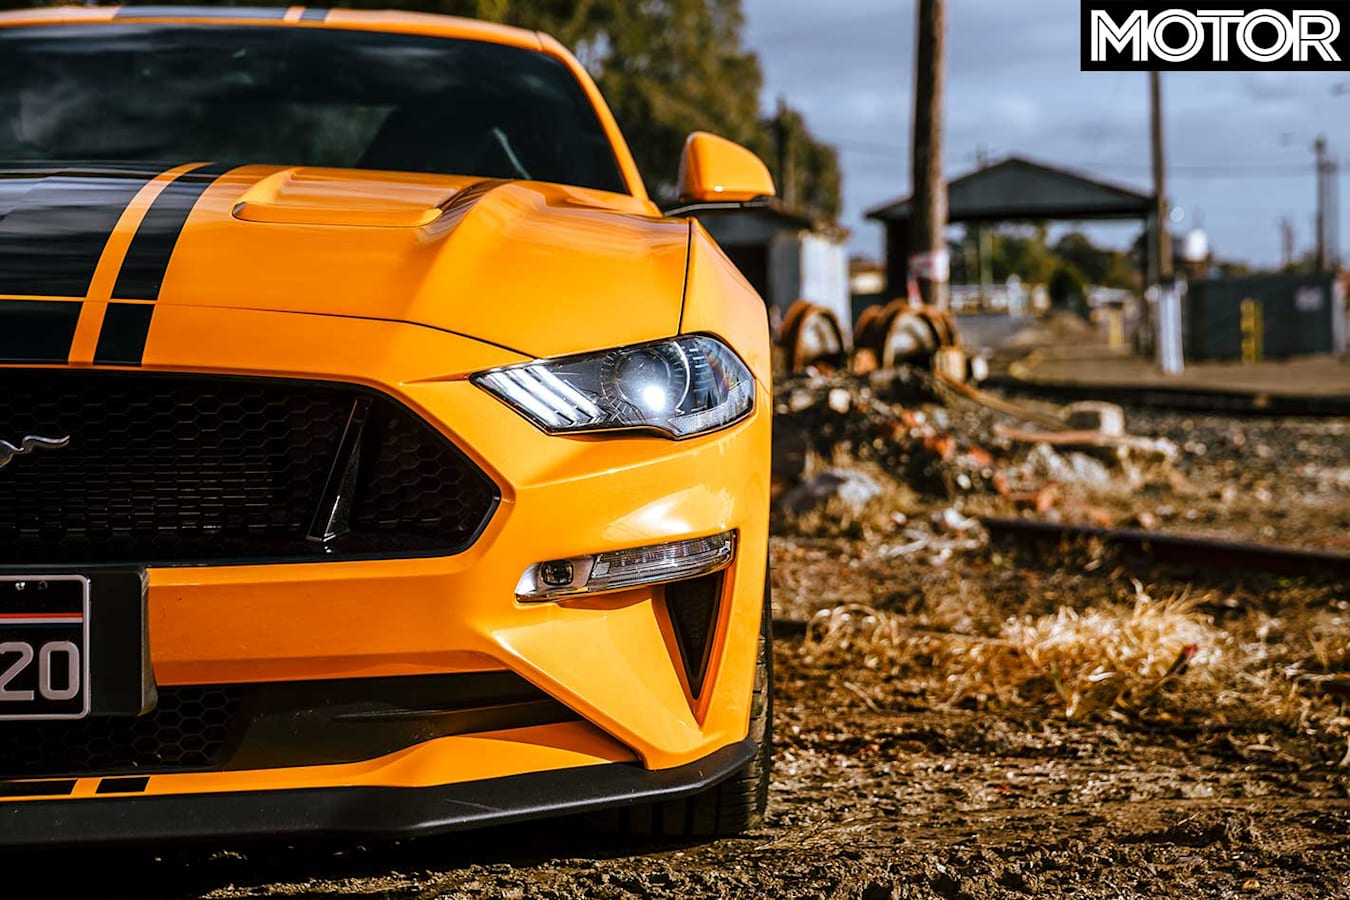 2018 Ford Mustang GT Front Headlight Grille Jpg